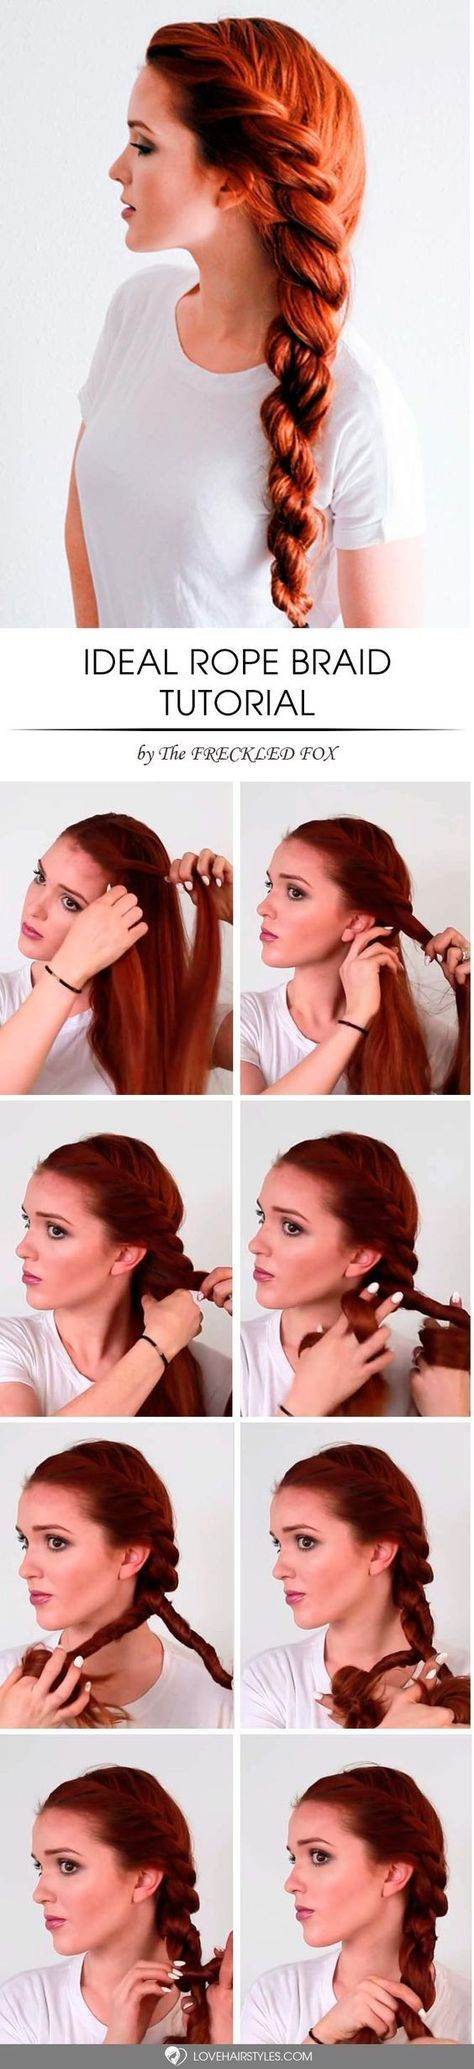 best basic hairstyles images on pinterest